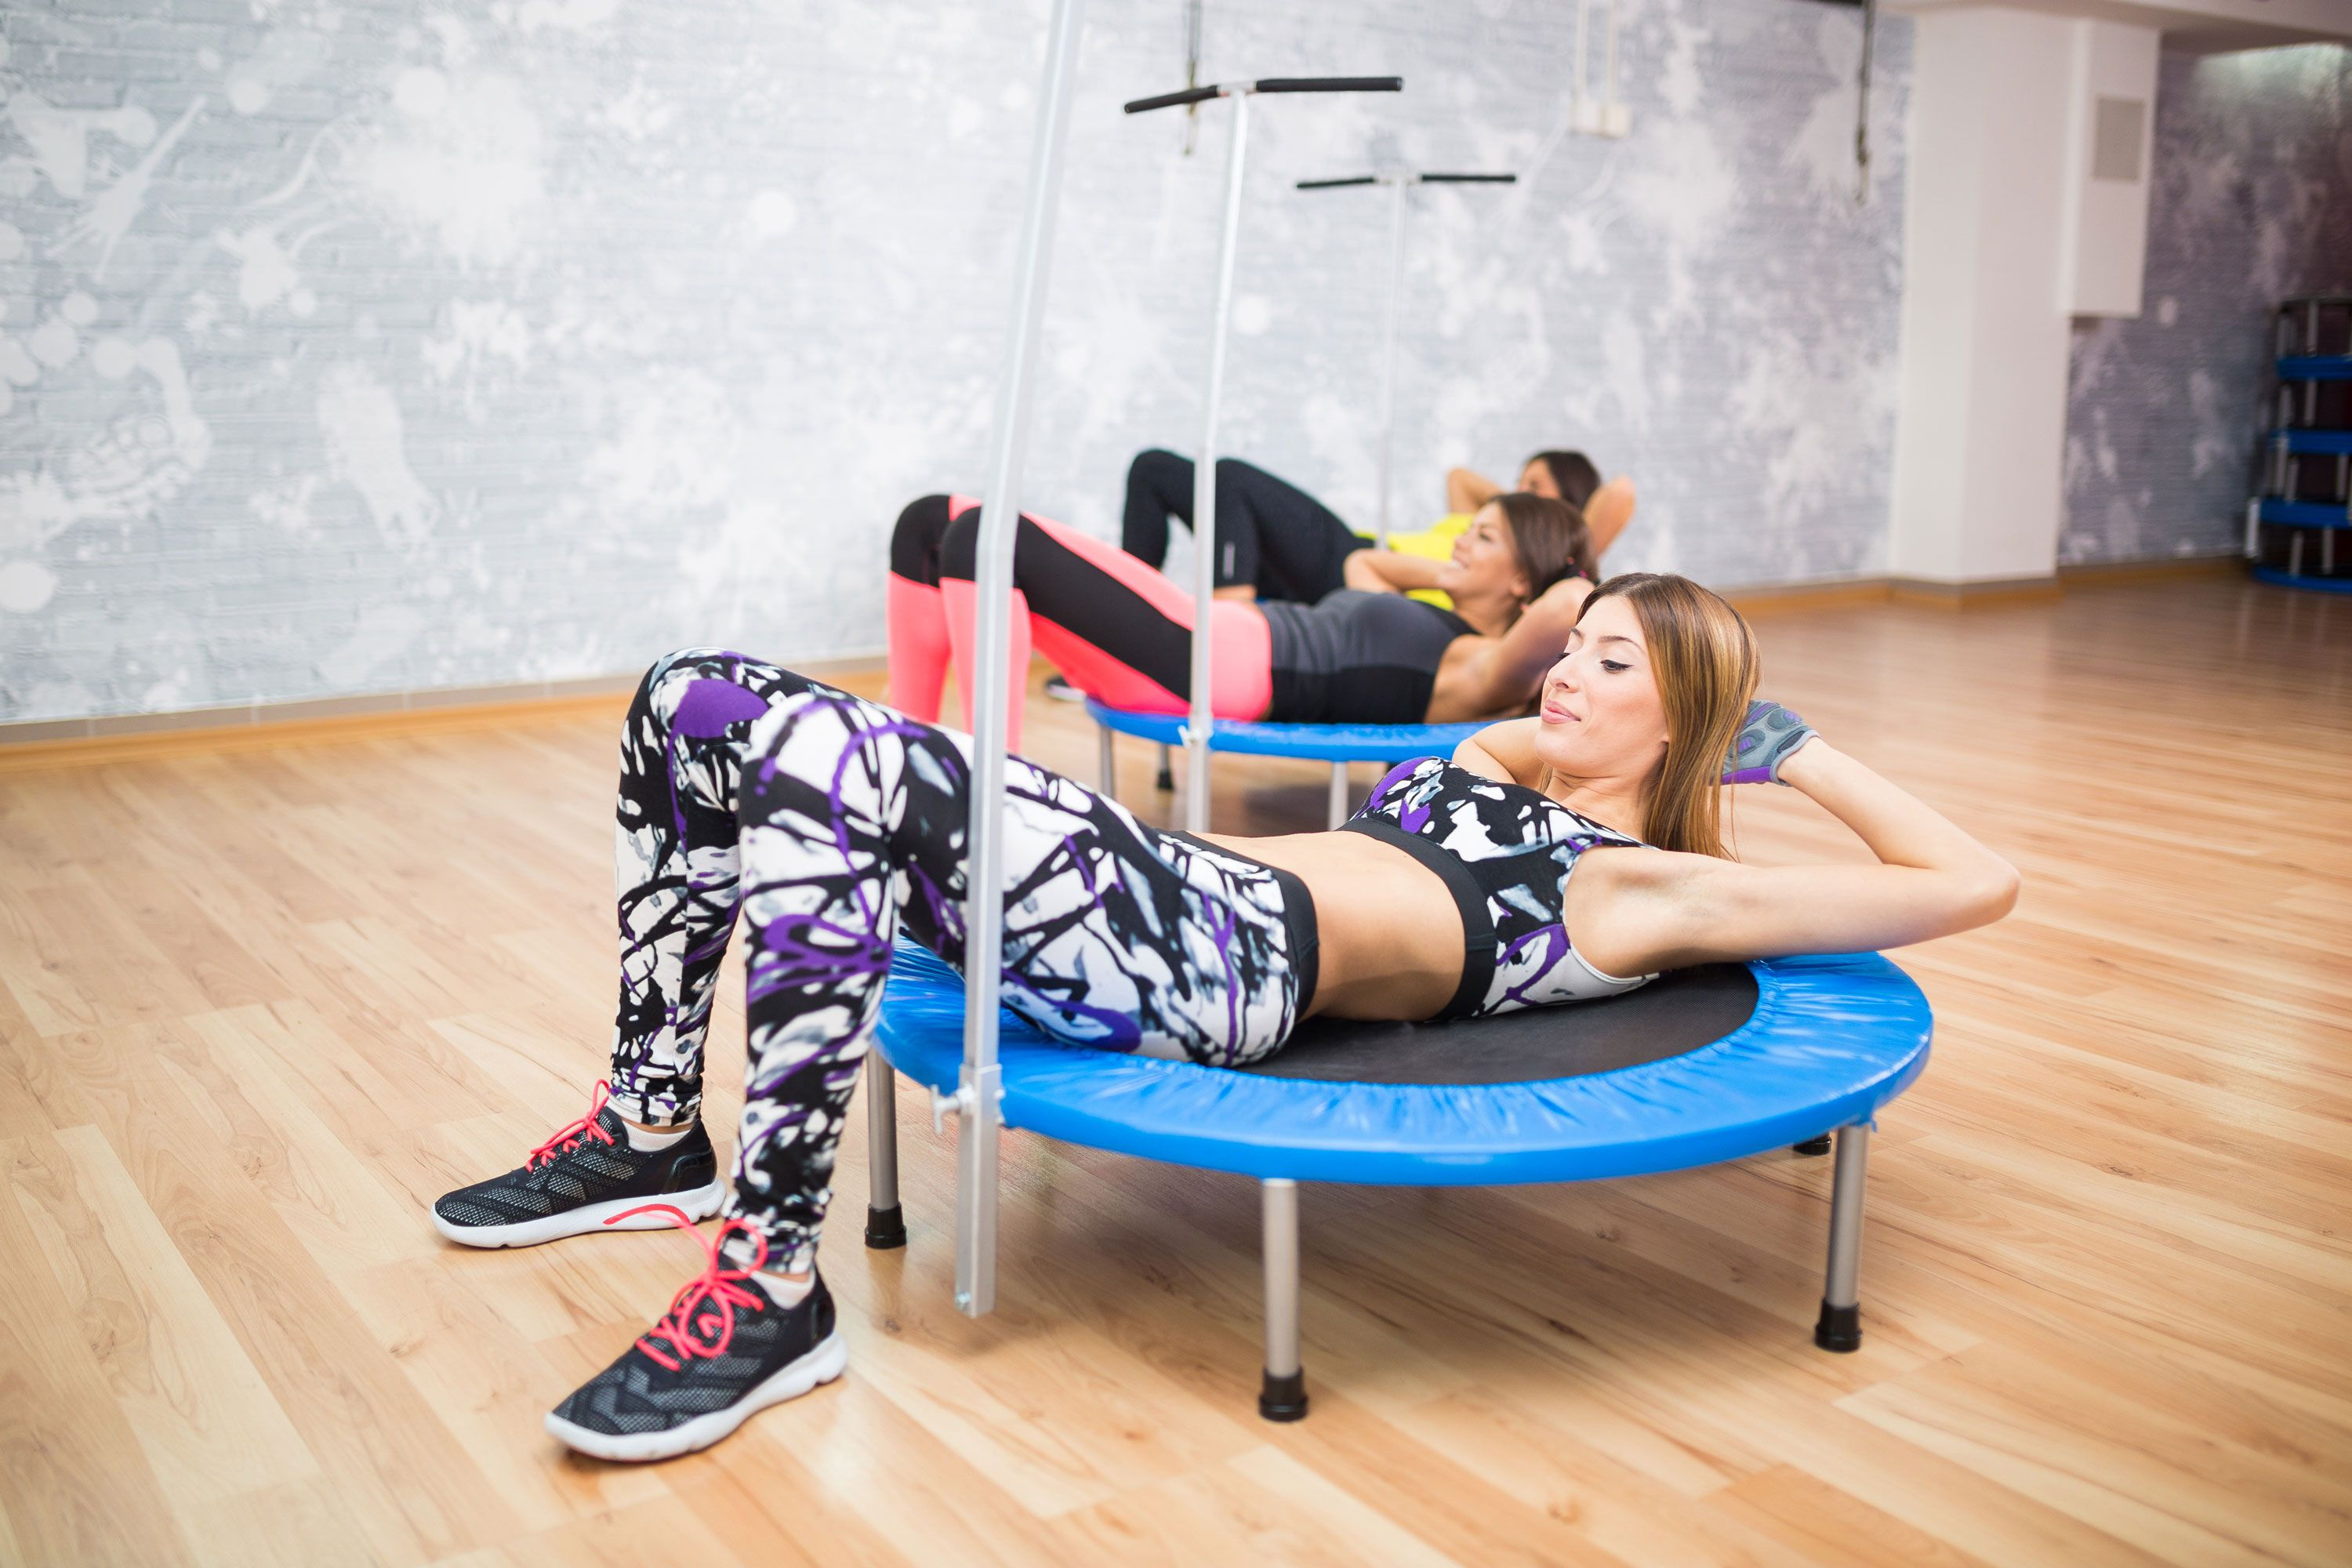 Try This 40-Minute Trampoline Workout to Add Some Bounce to Your Day